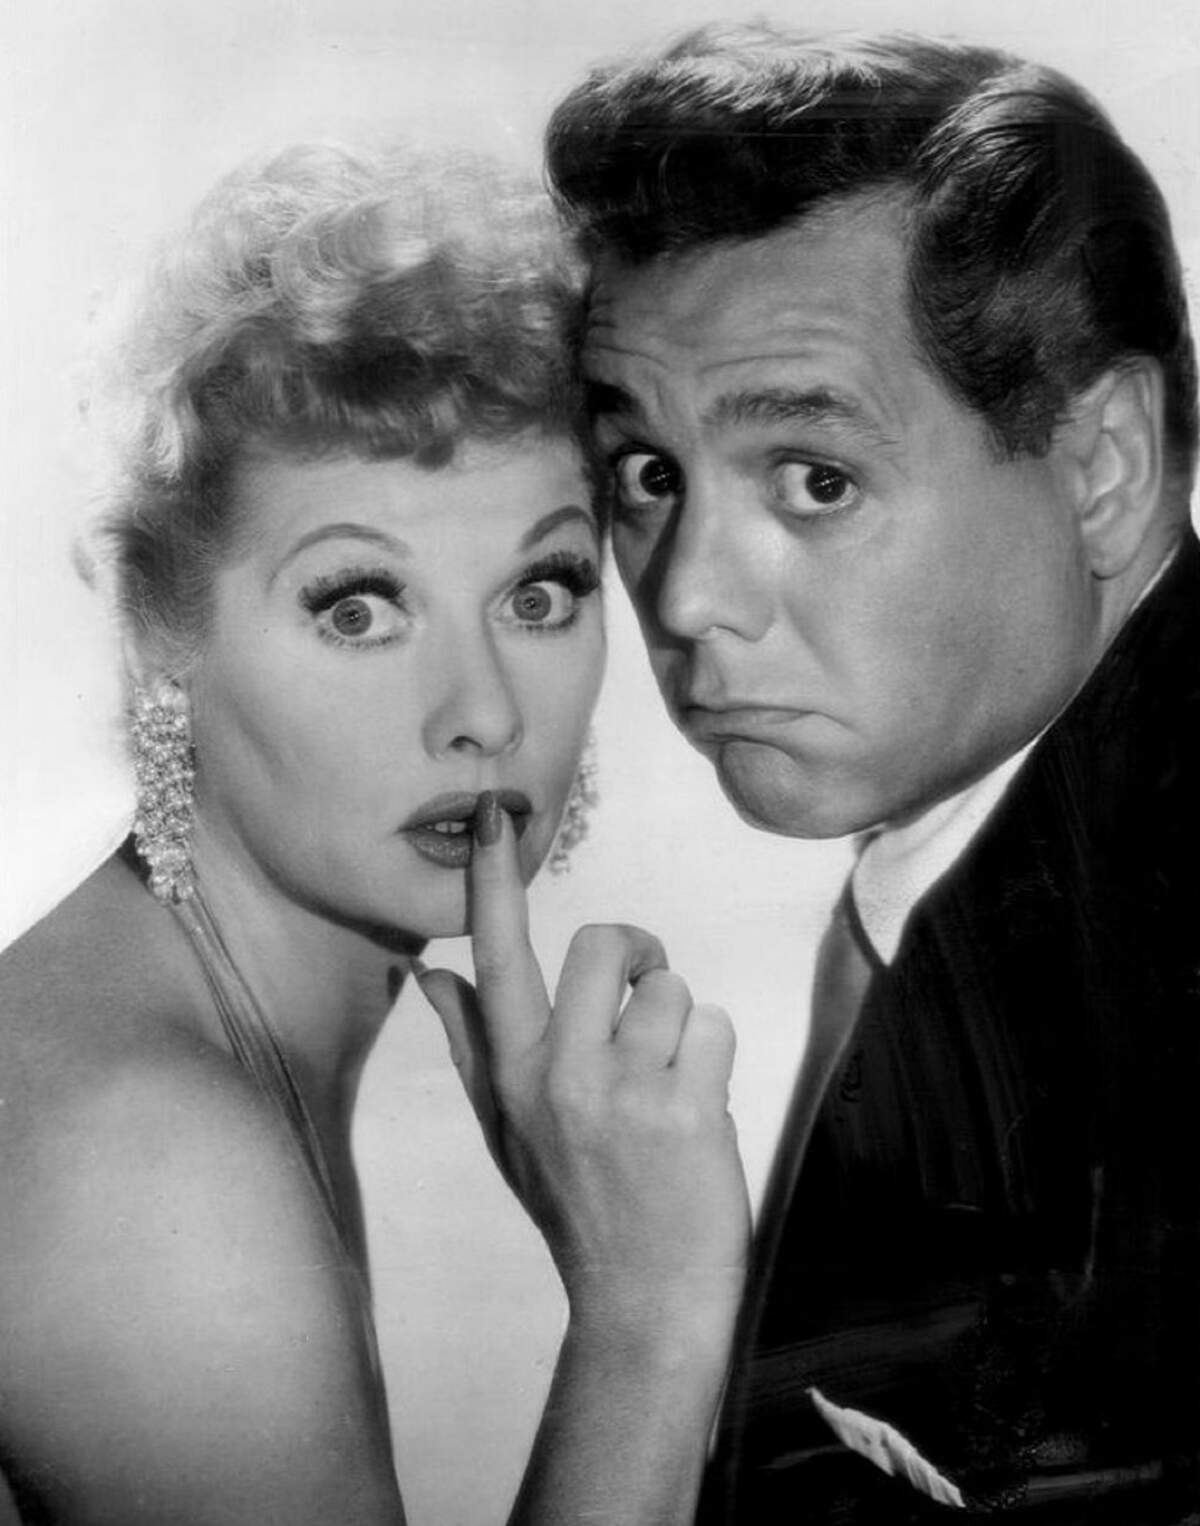 a review of the 1950s sitcom i love lucy and its impact on the american society and entertainment in Sitcom: a history in 24 episodes from 'i love lucy' to 'community' book world: in saul austerlitz's 'sitcom,' a serious look at the history of the tv genre.